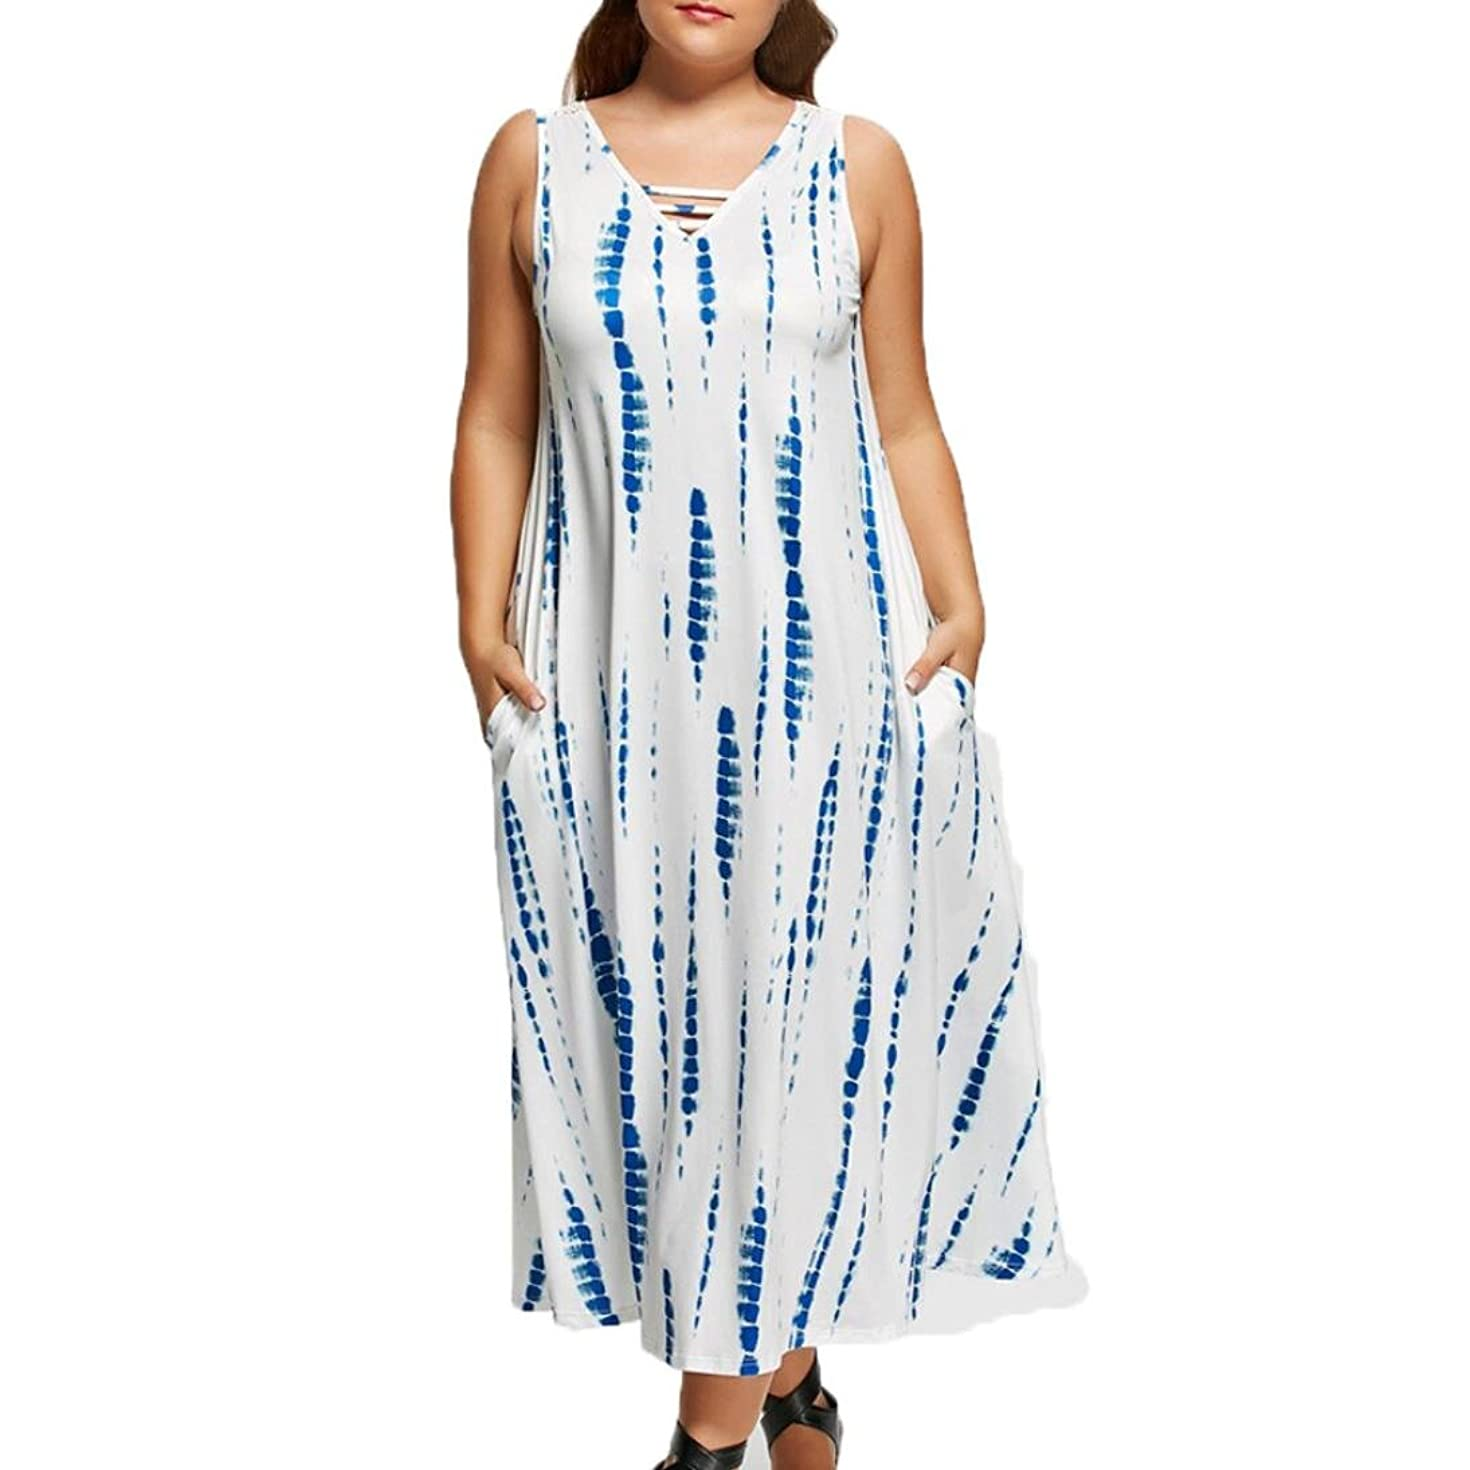 Hot sale!Clearence!Loose Dress Todaies Summer Women Casual Sleeveless Dress Party Lace Loose Beach Dress Plus Size